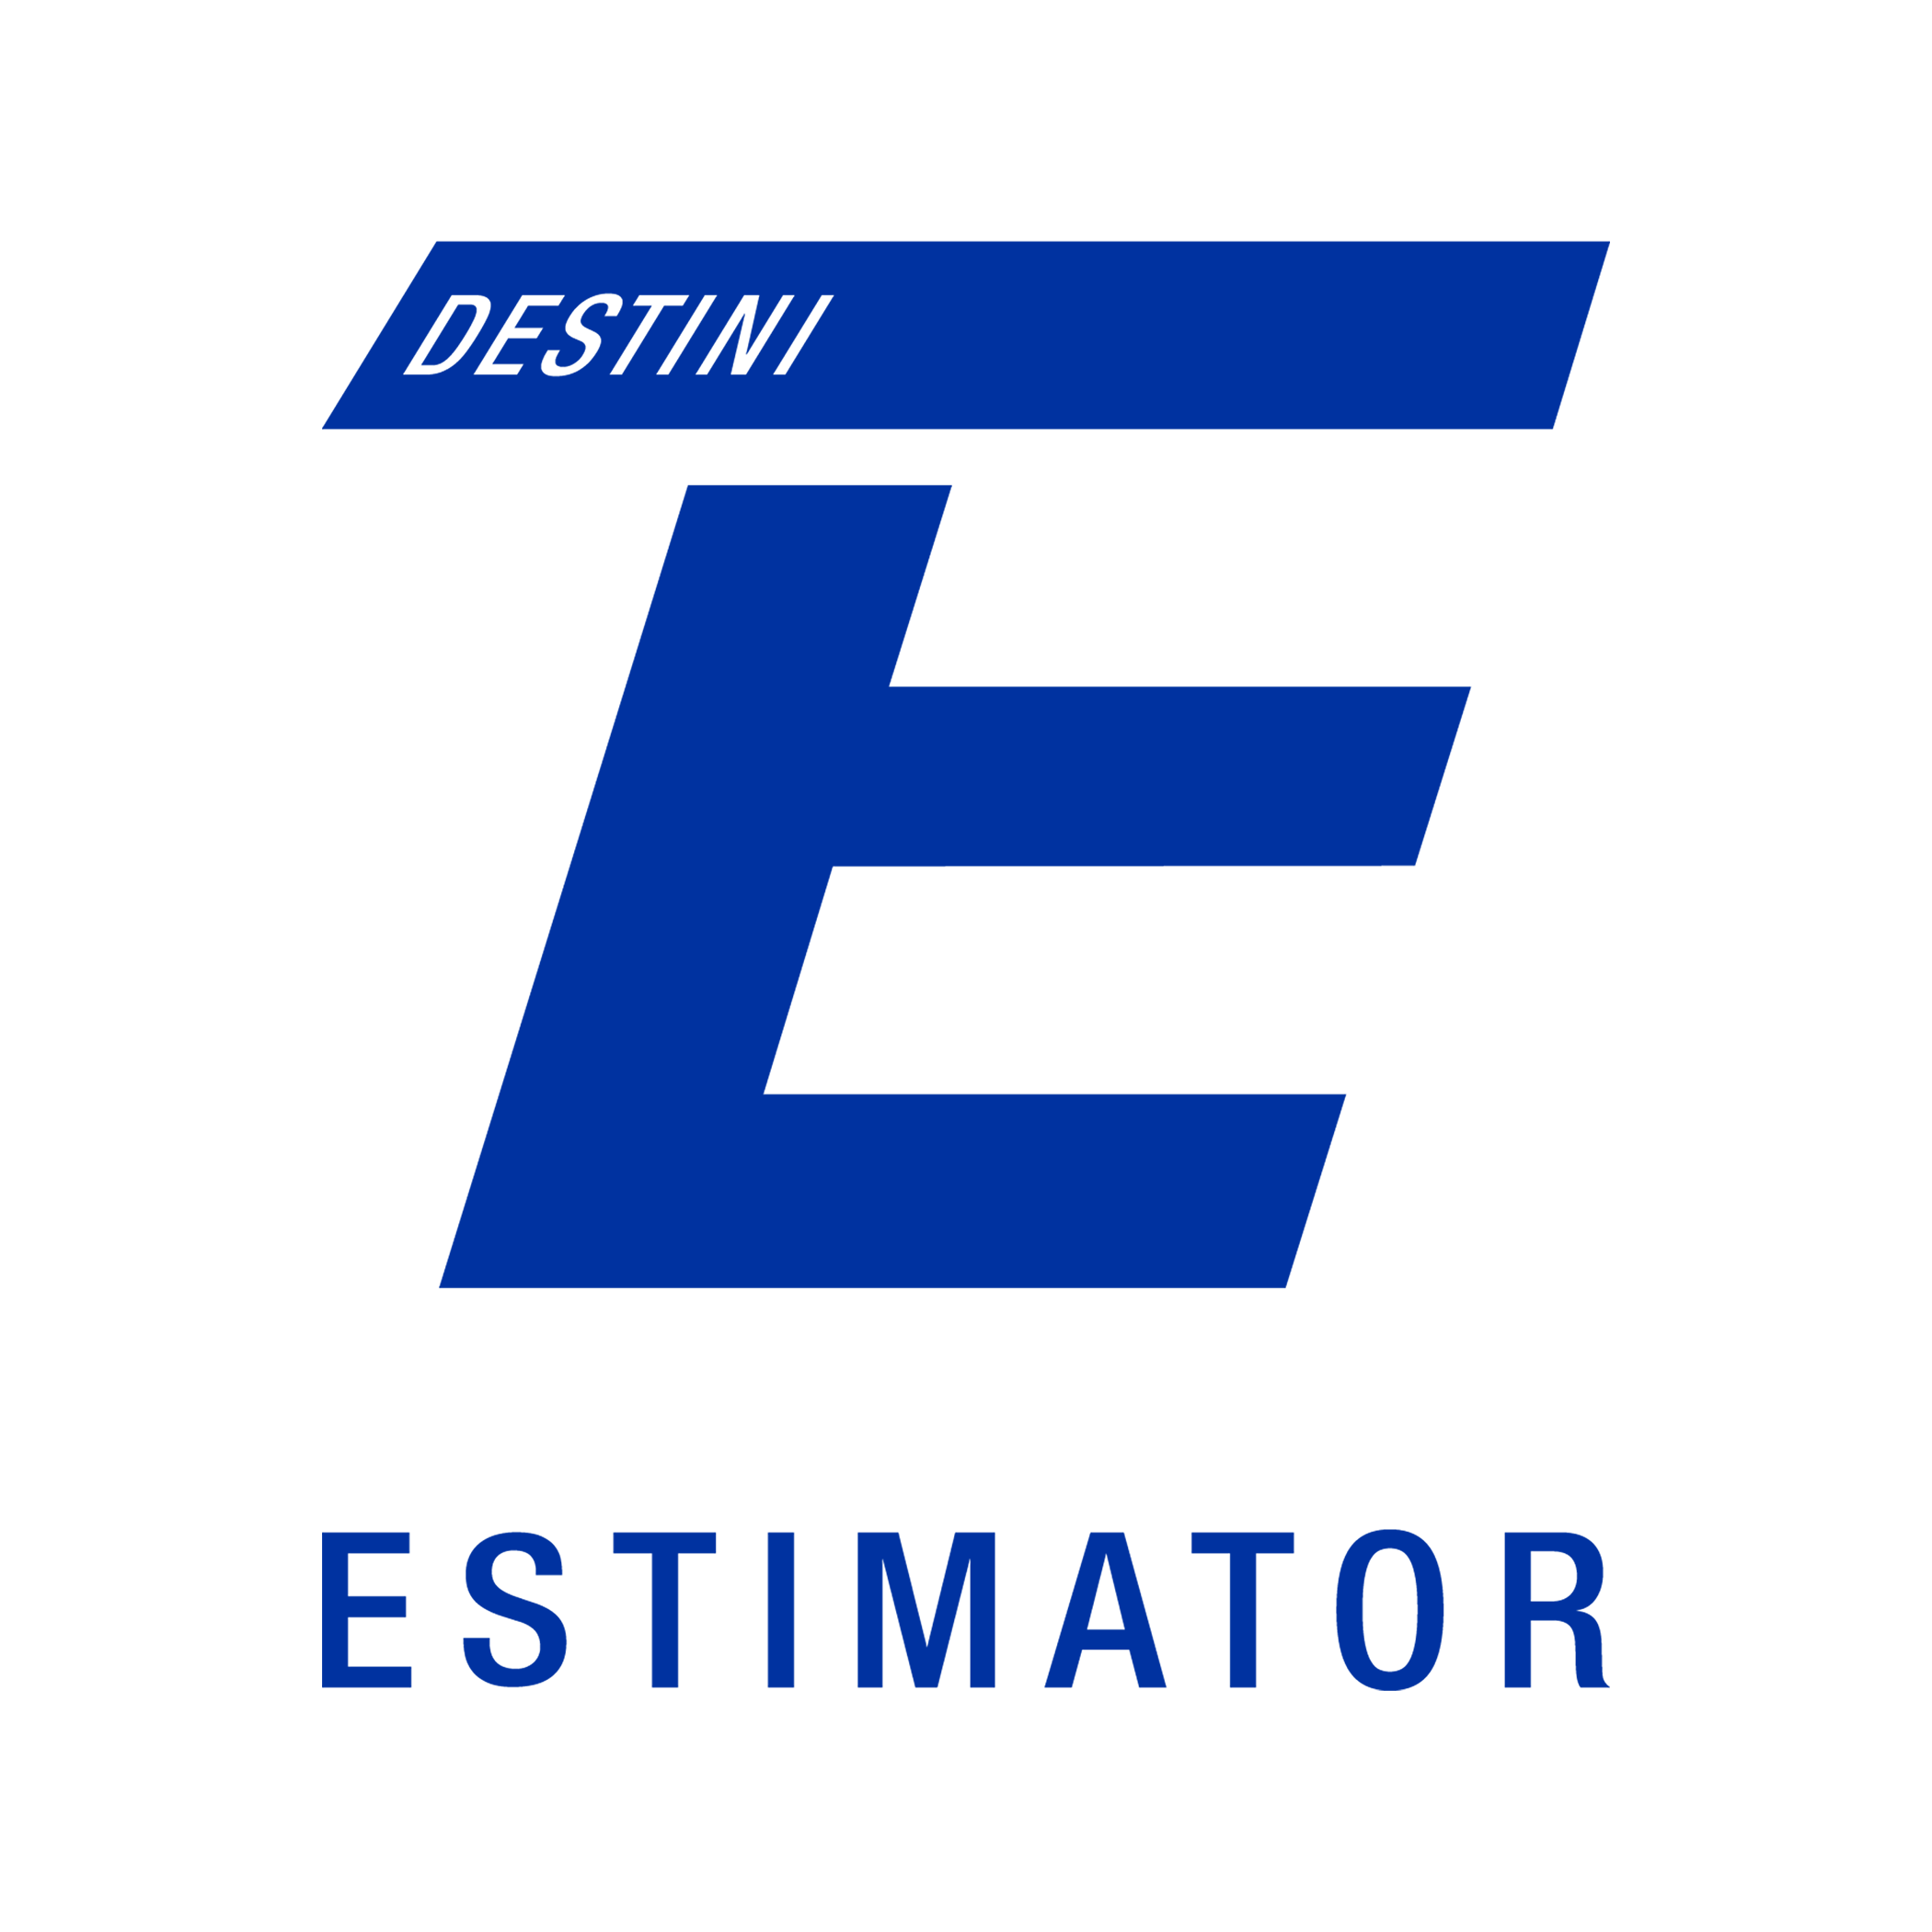 DESTINI Estimator Logo